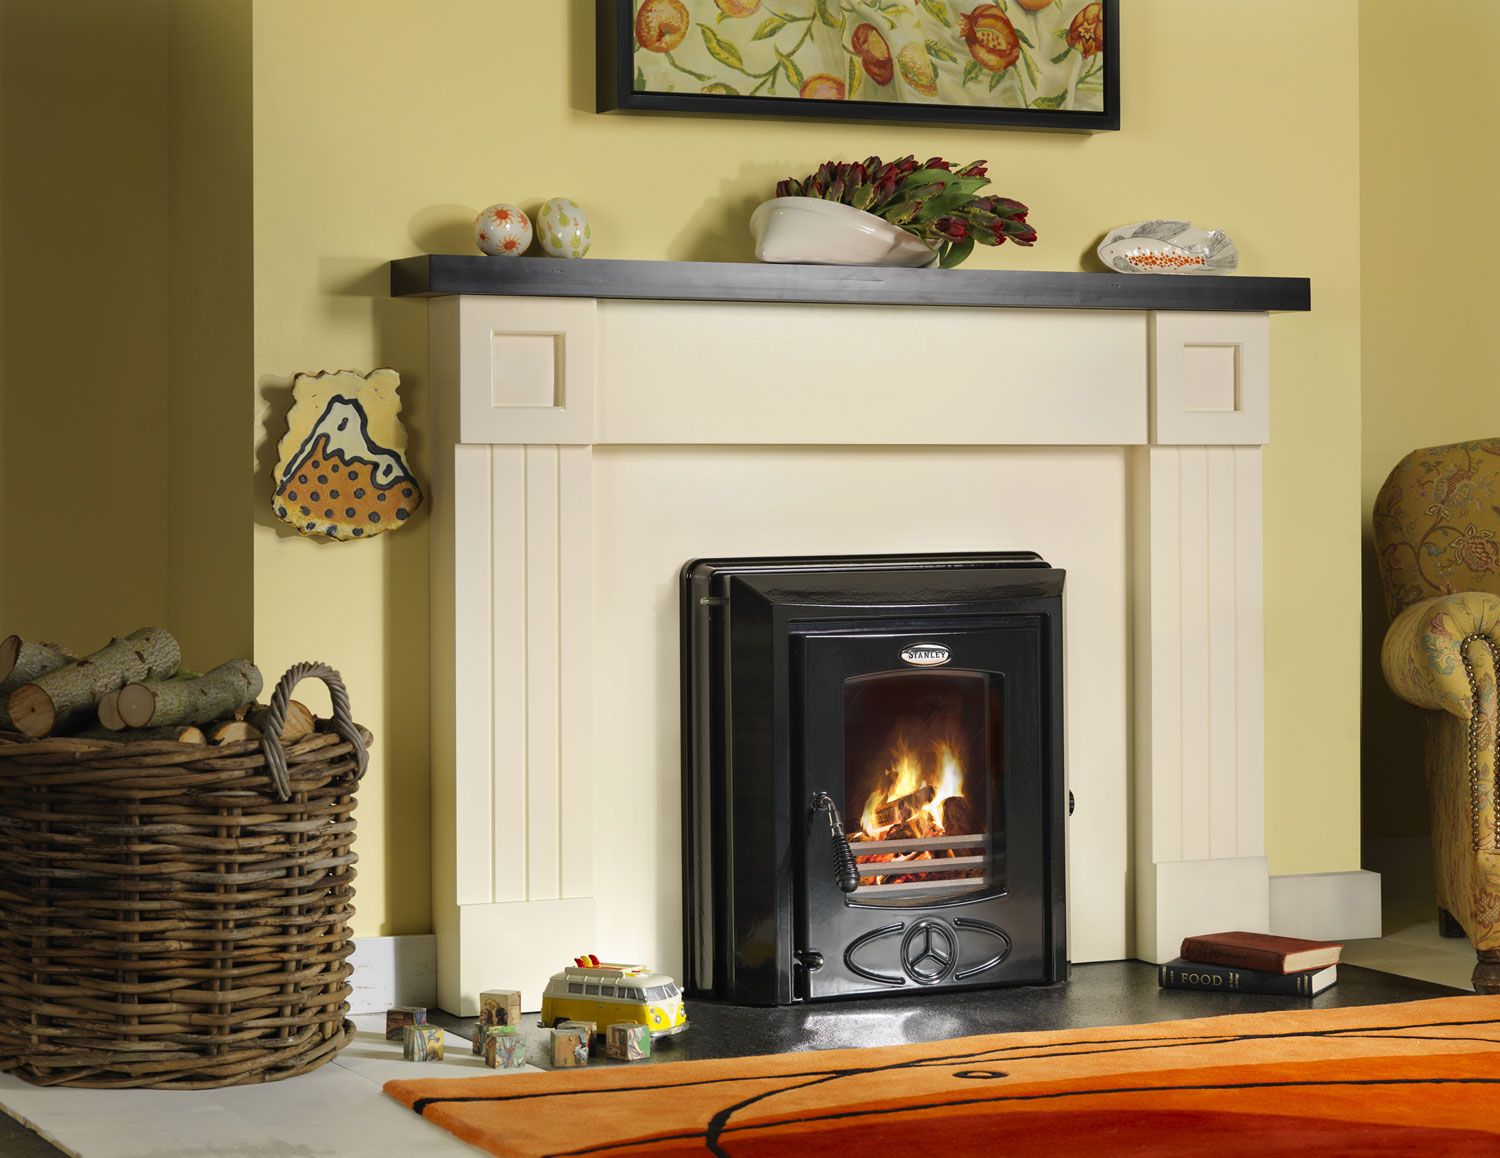 Replace Your Inefficient Back Boiler And Open Fire With A Powerful Home  Heating Solution. Using  Replace Fireplace Insert